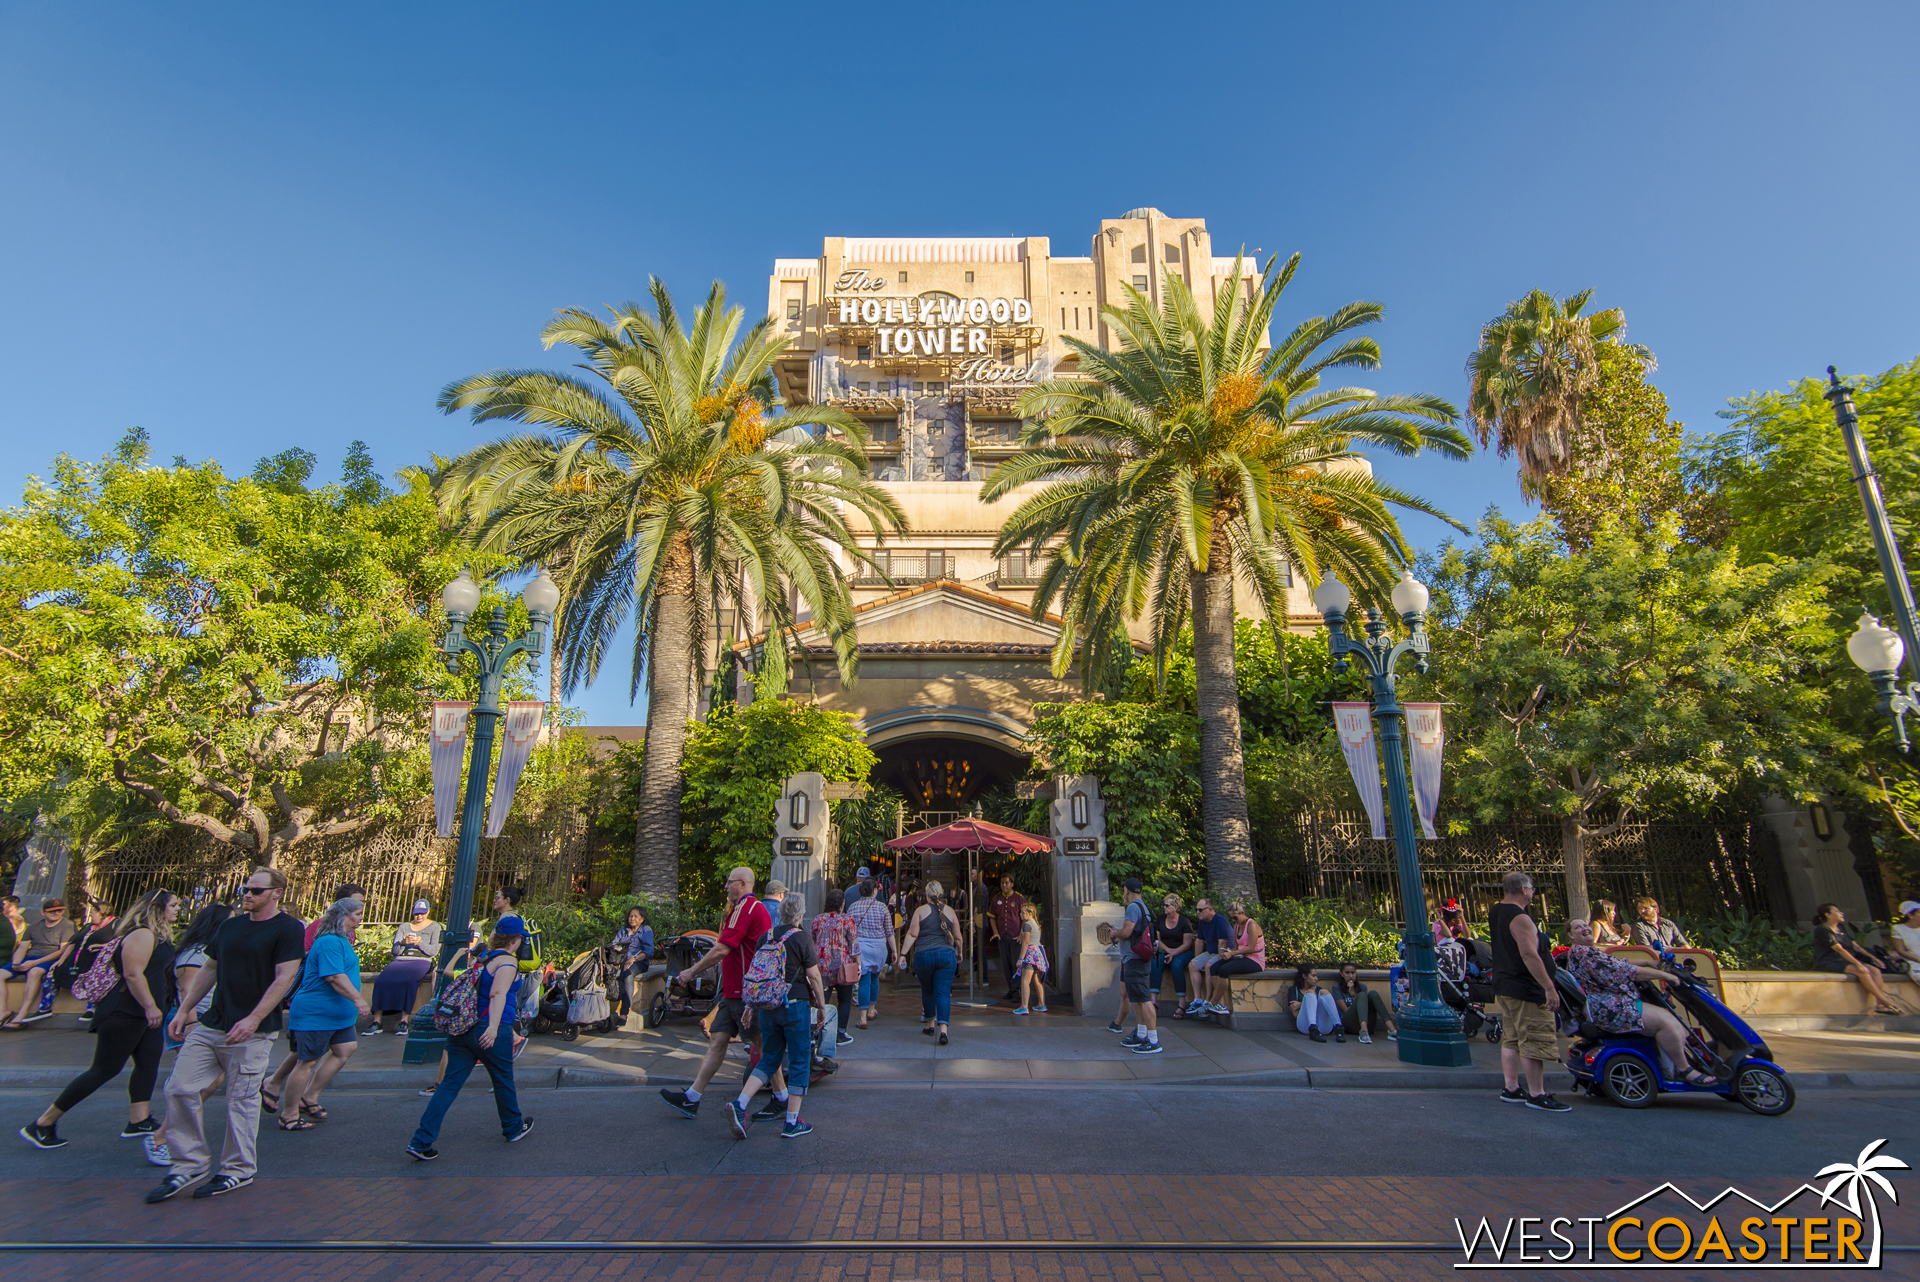 Tower of Terror will be shedding its art deco exterior.